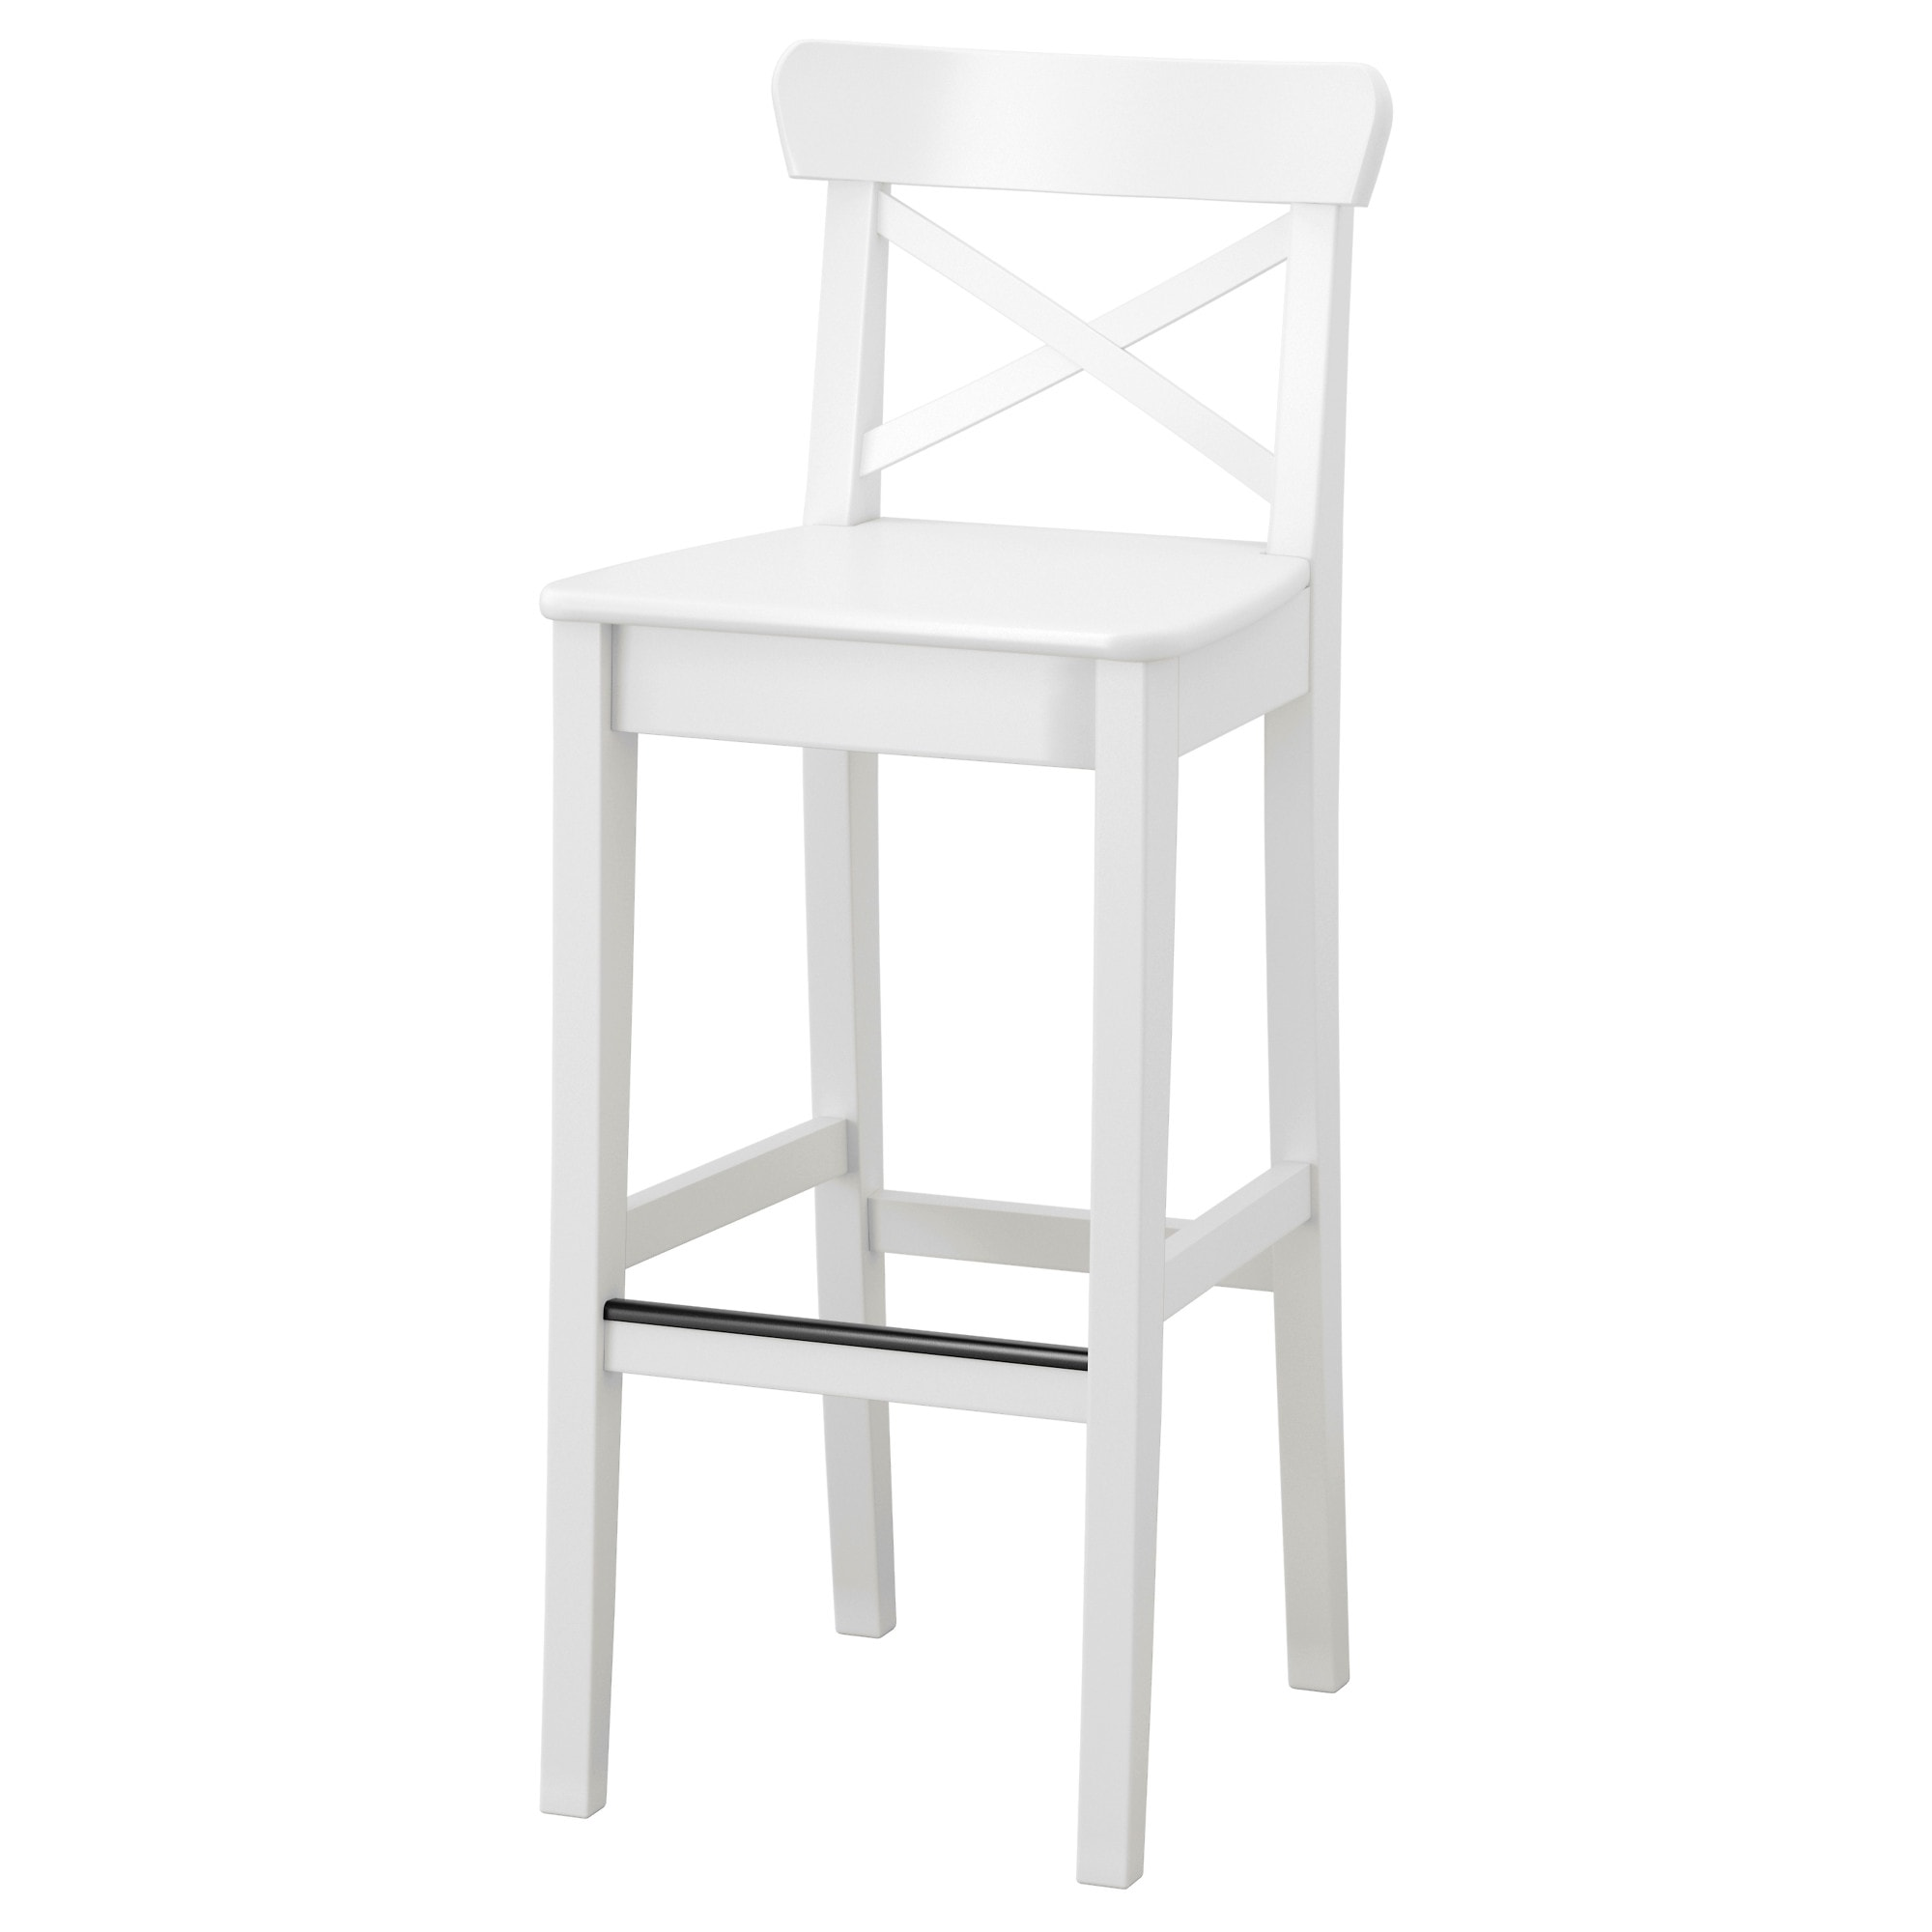 white bar stools ikea INGOLF Bar stool with backrest   24 3/4